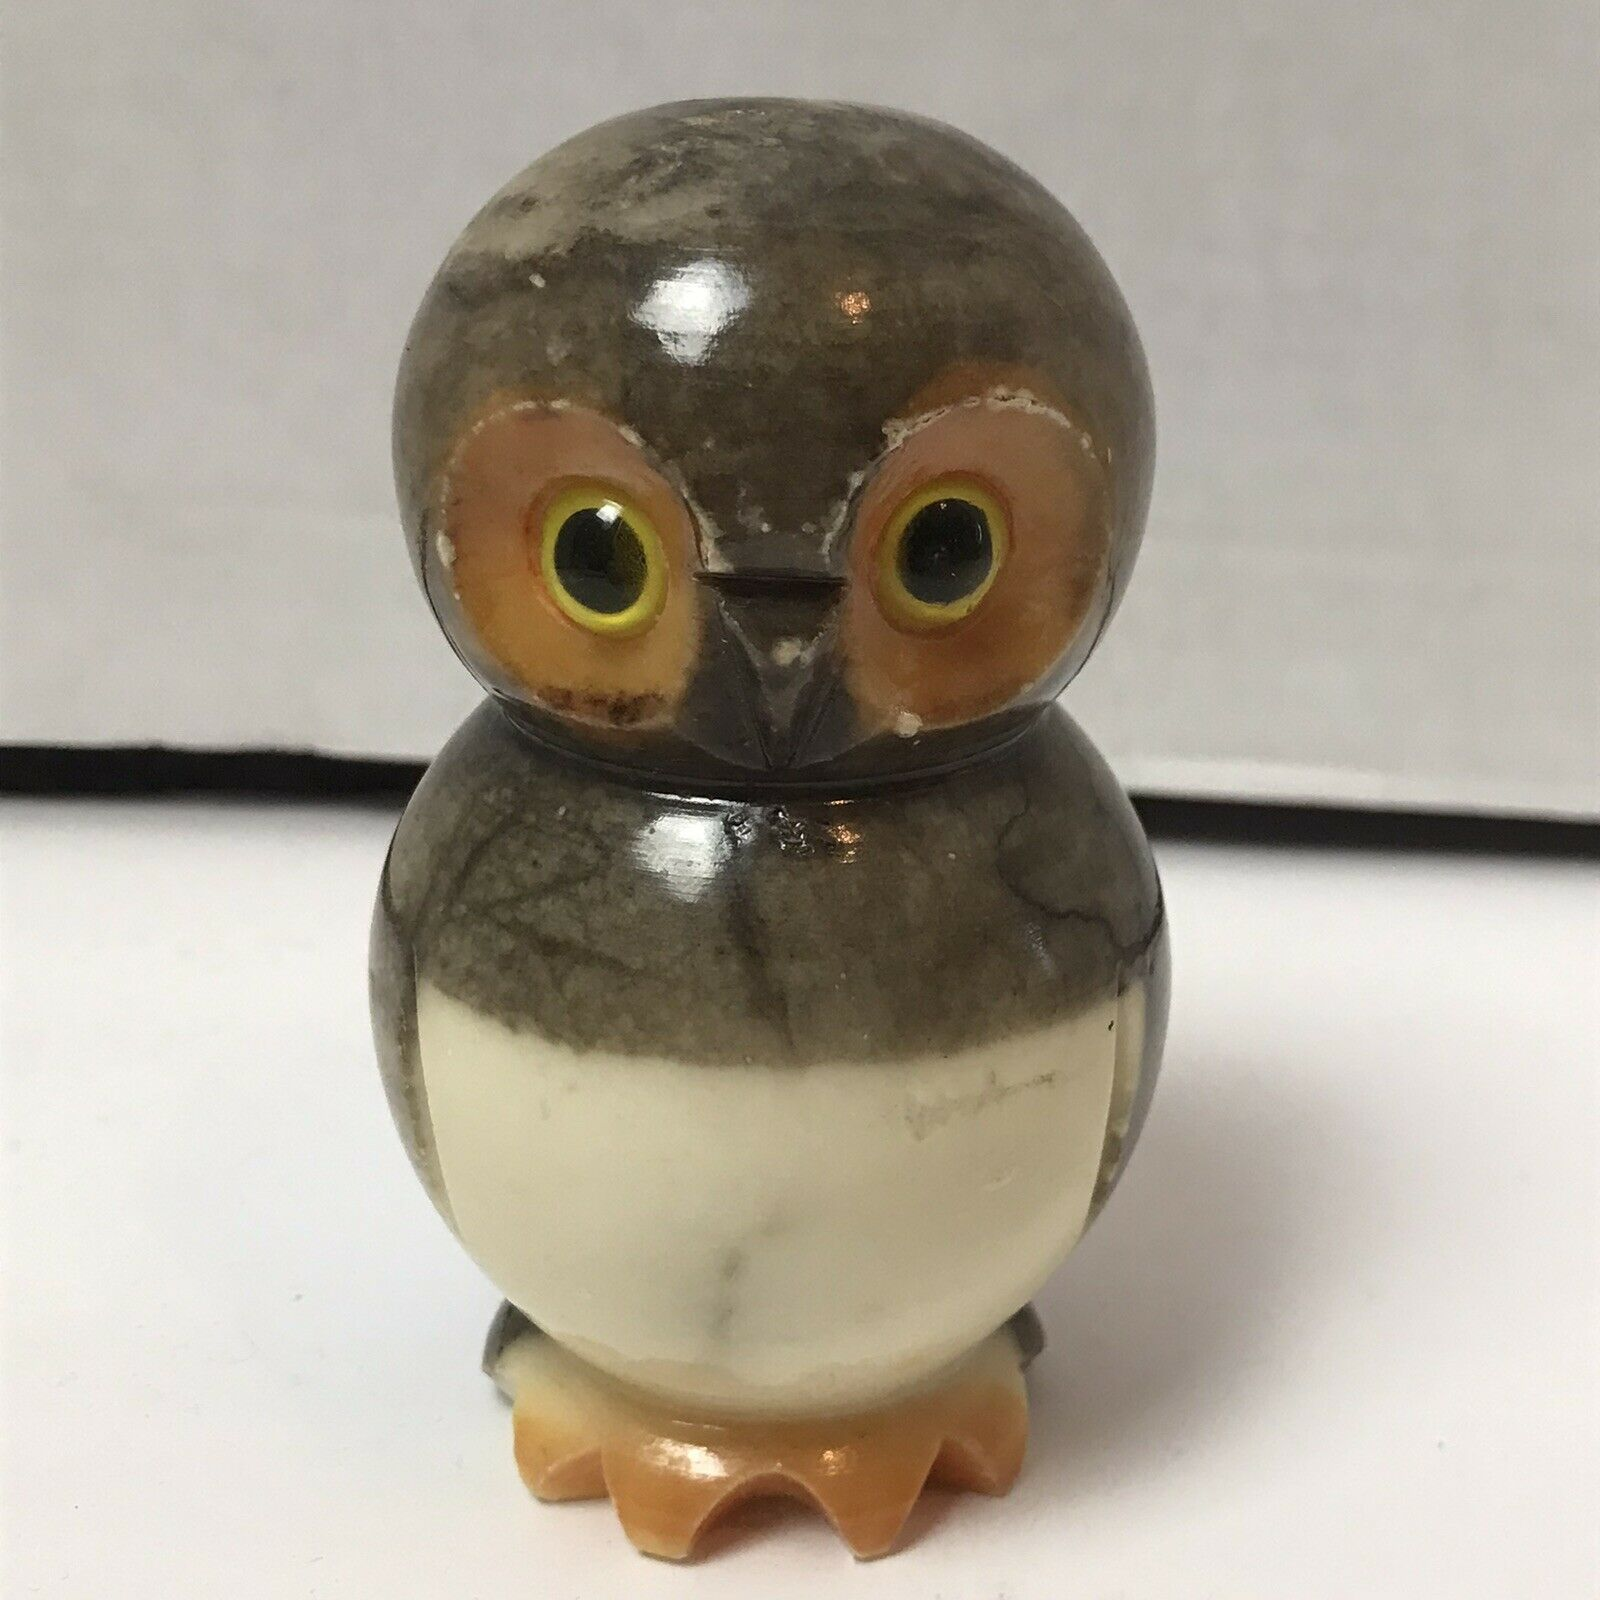 Primary image for Vintage Alabaster Natural Stone Carved Owl Figurine Italy Kitsch